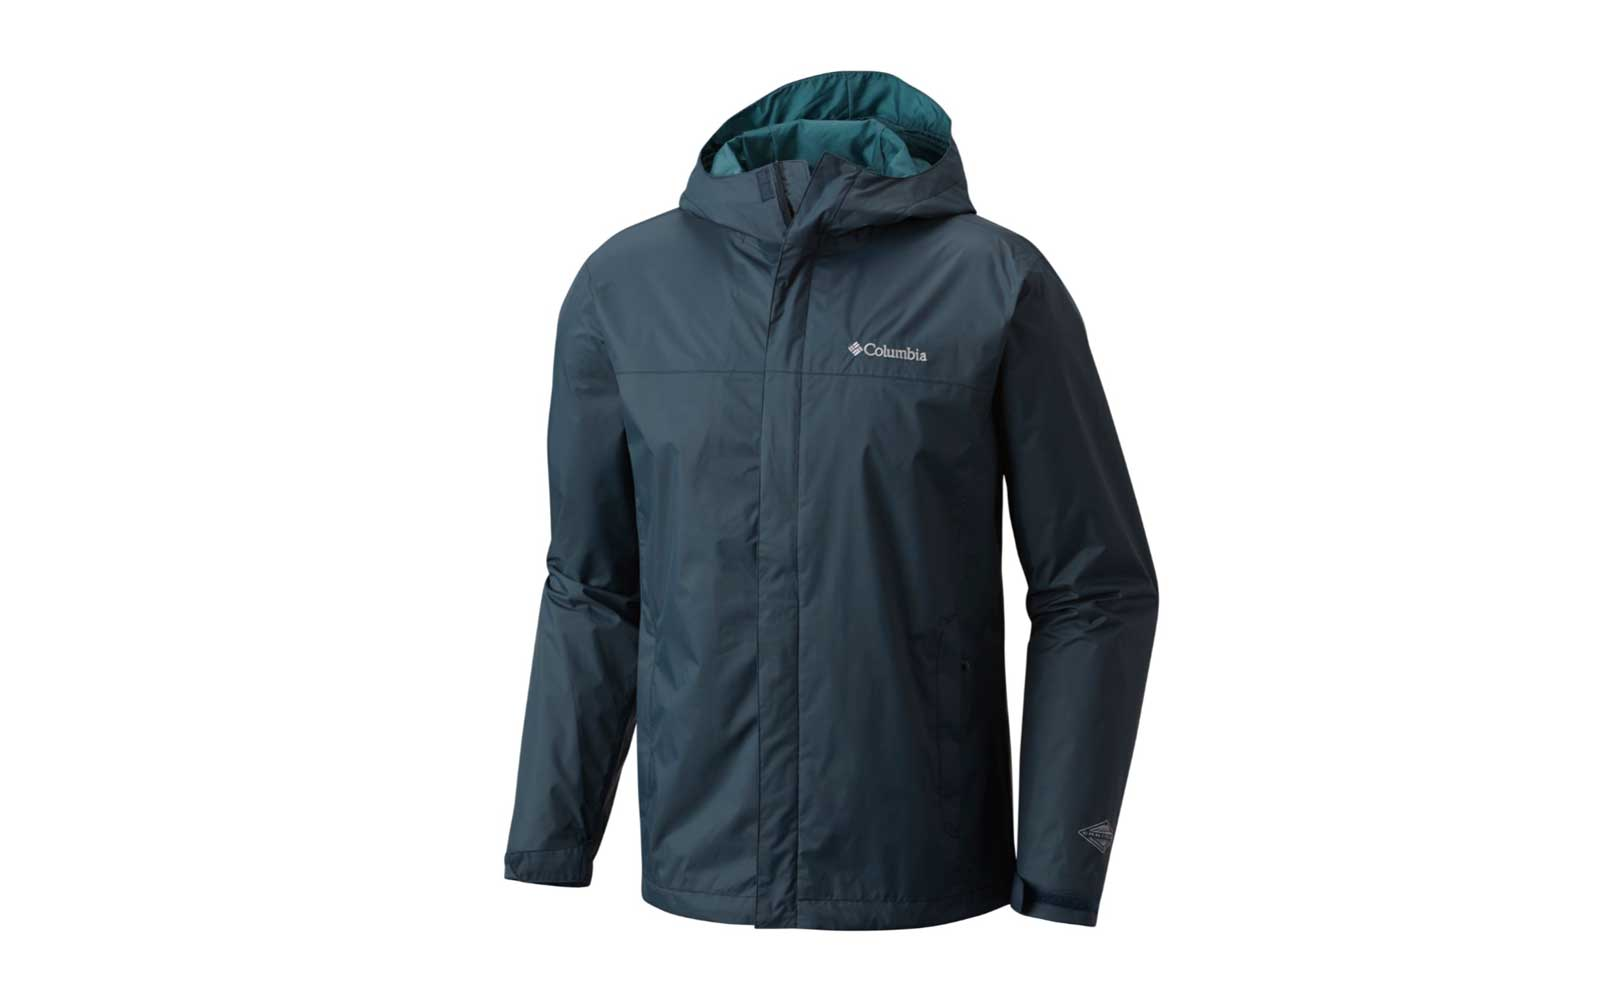 a654f4cccc8 Packable Rain Jackets for Men and Women